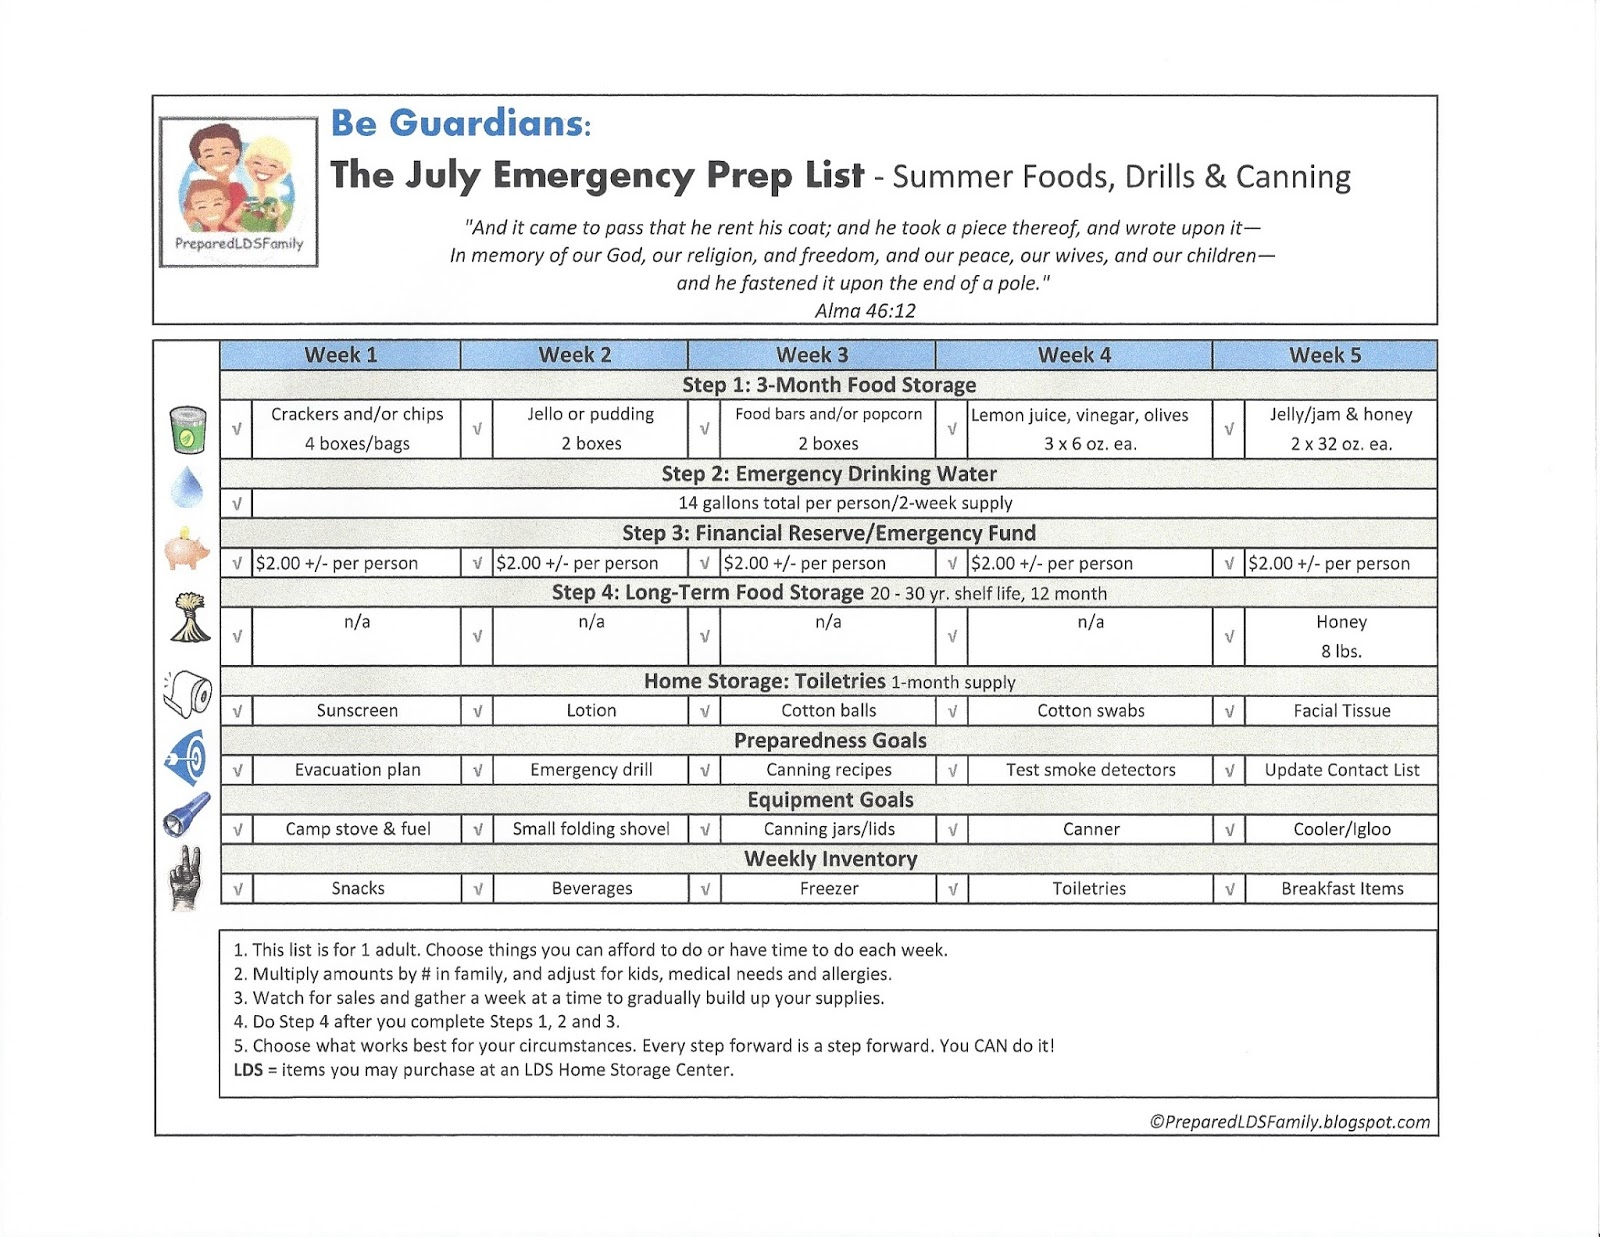 worksheet Emergency Preparedness Worksheet prepared lds family july emergency preparedness goals summer foods drills canning